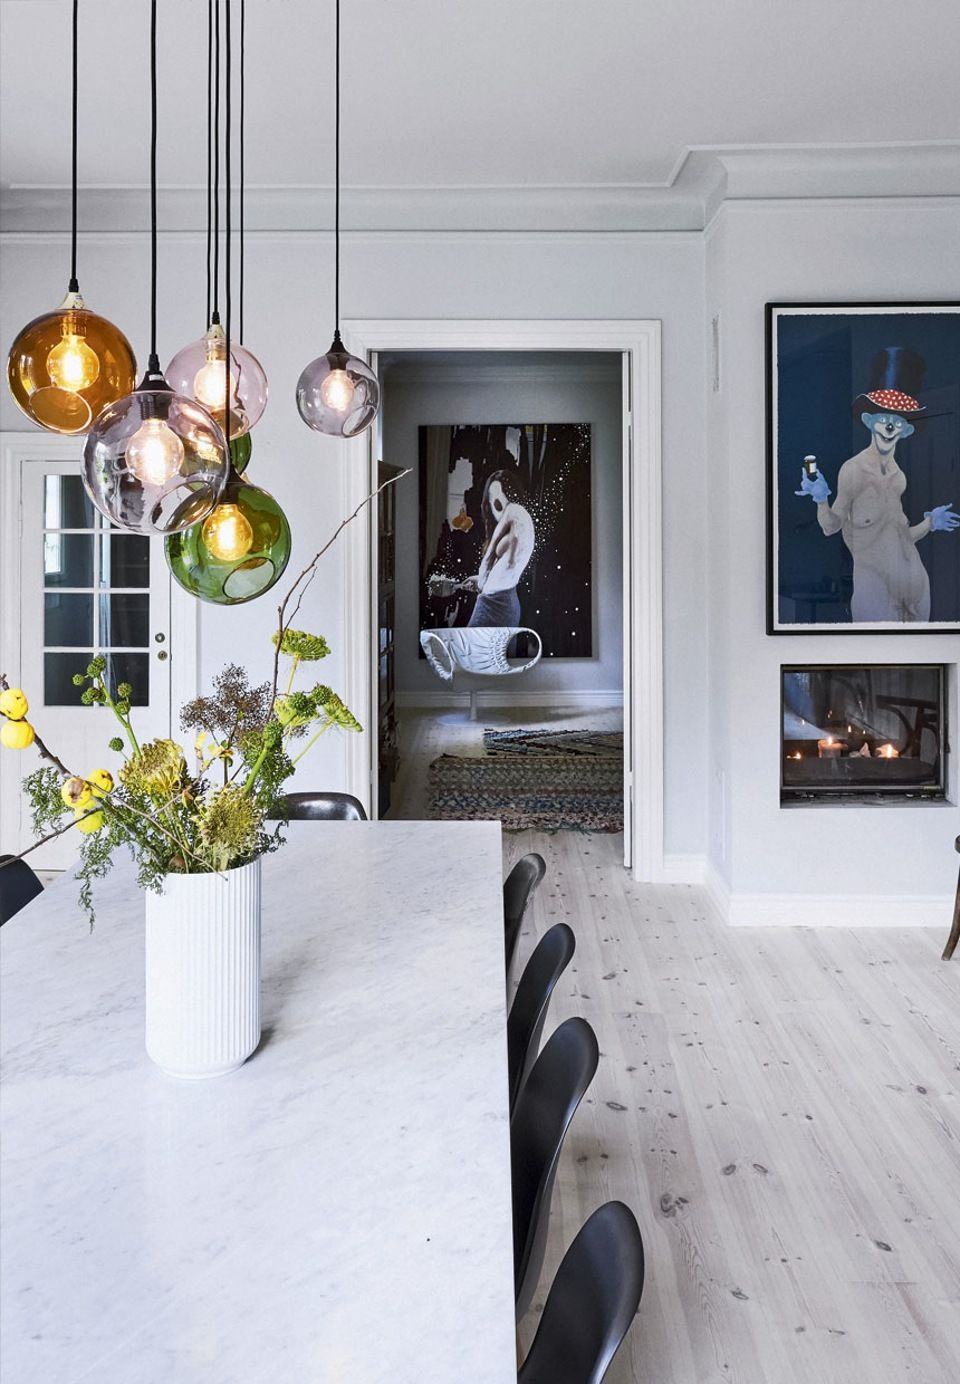 Lights Over Dining Table Forført Af En Stemning H O M E Modern Kitchen Lighting Dining